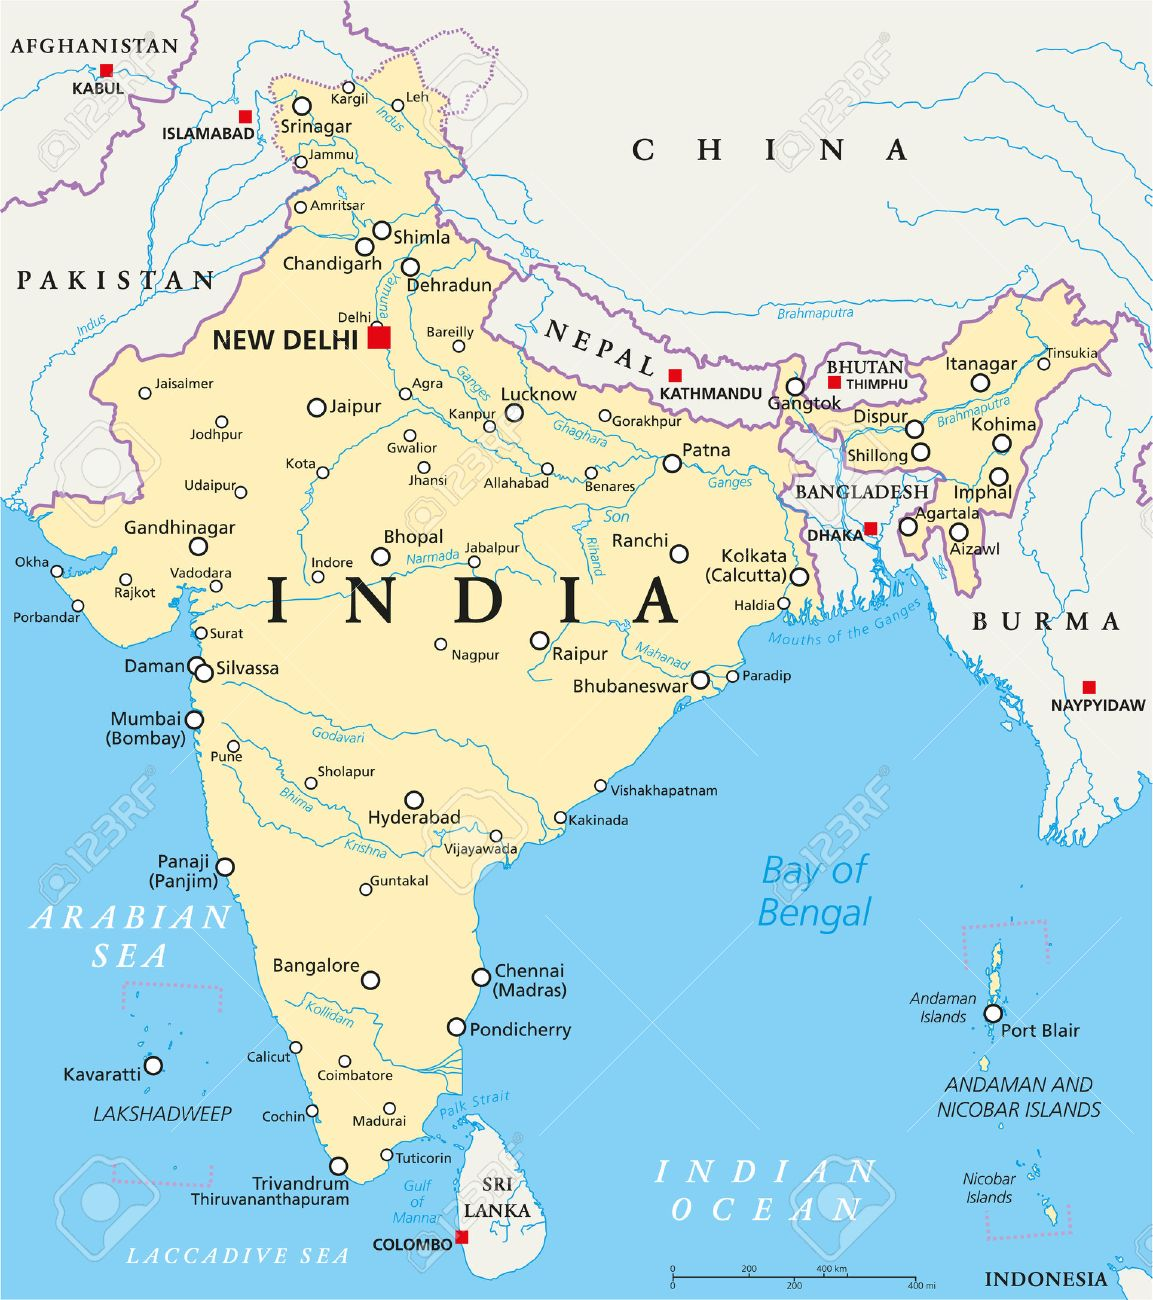 New Delhi India Map India Political Map With Capital New Delhi, National Borders